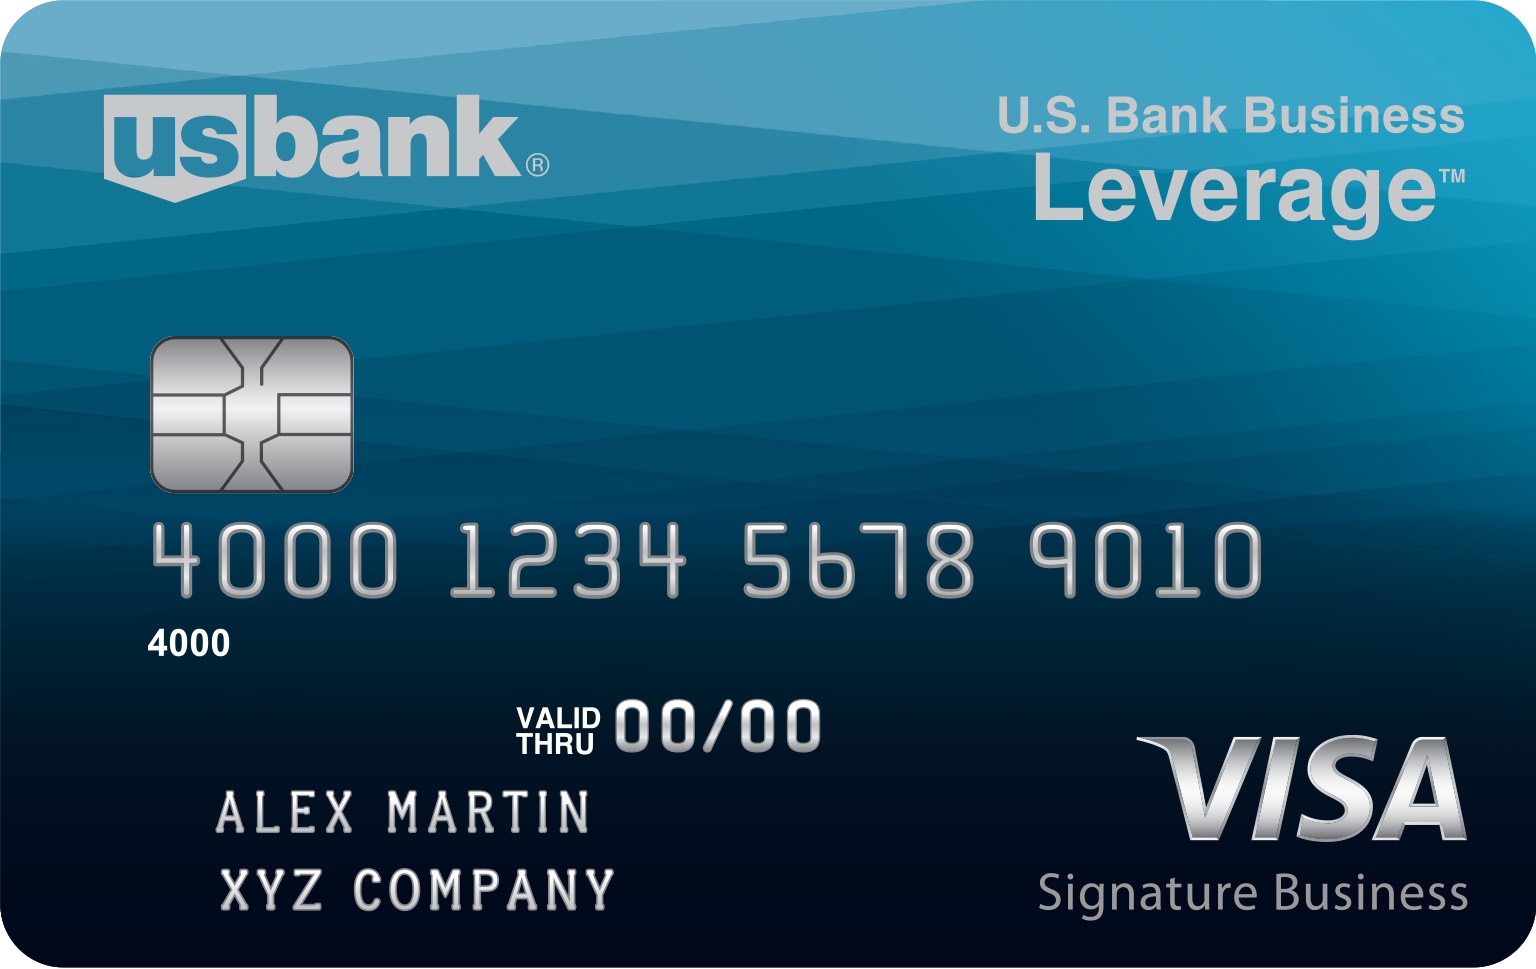 Us bank business leverage visa signature card delivers value us bank business leverage visa signature card delivers value where businesses spend the most business wire reheart Gallery